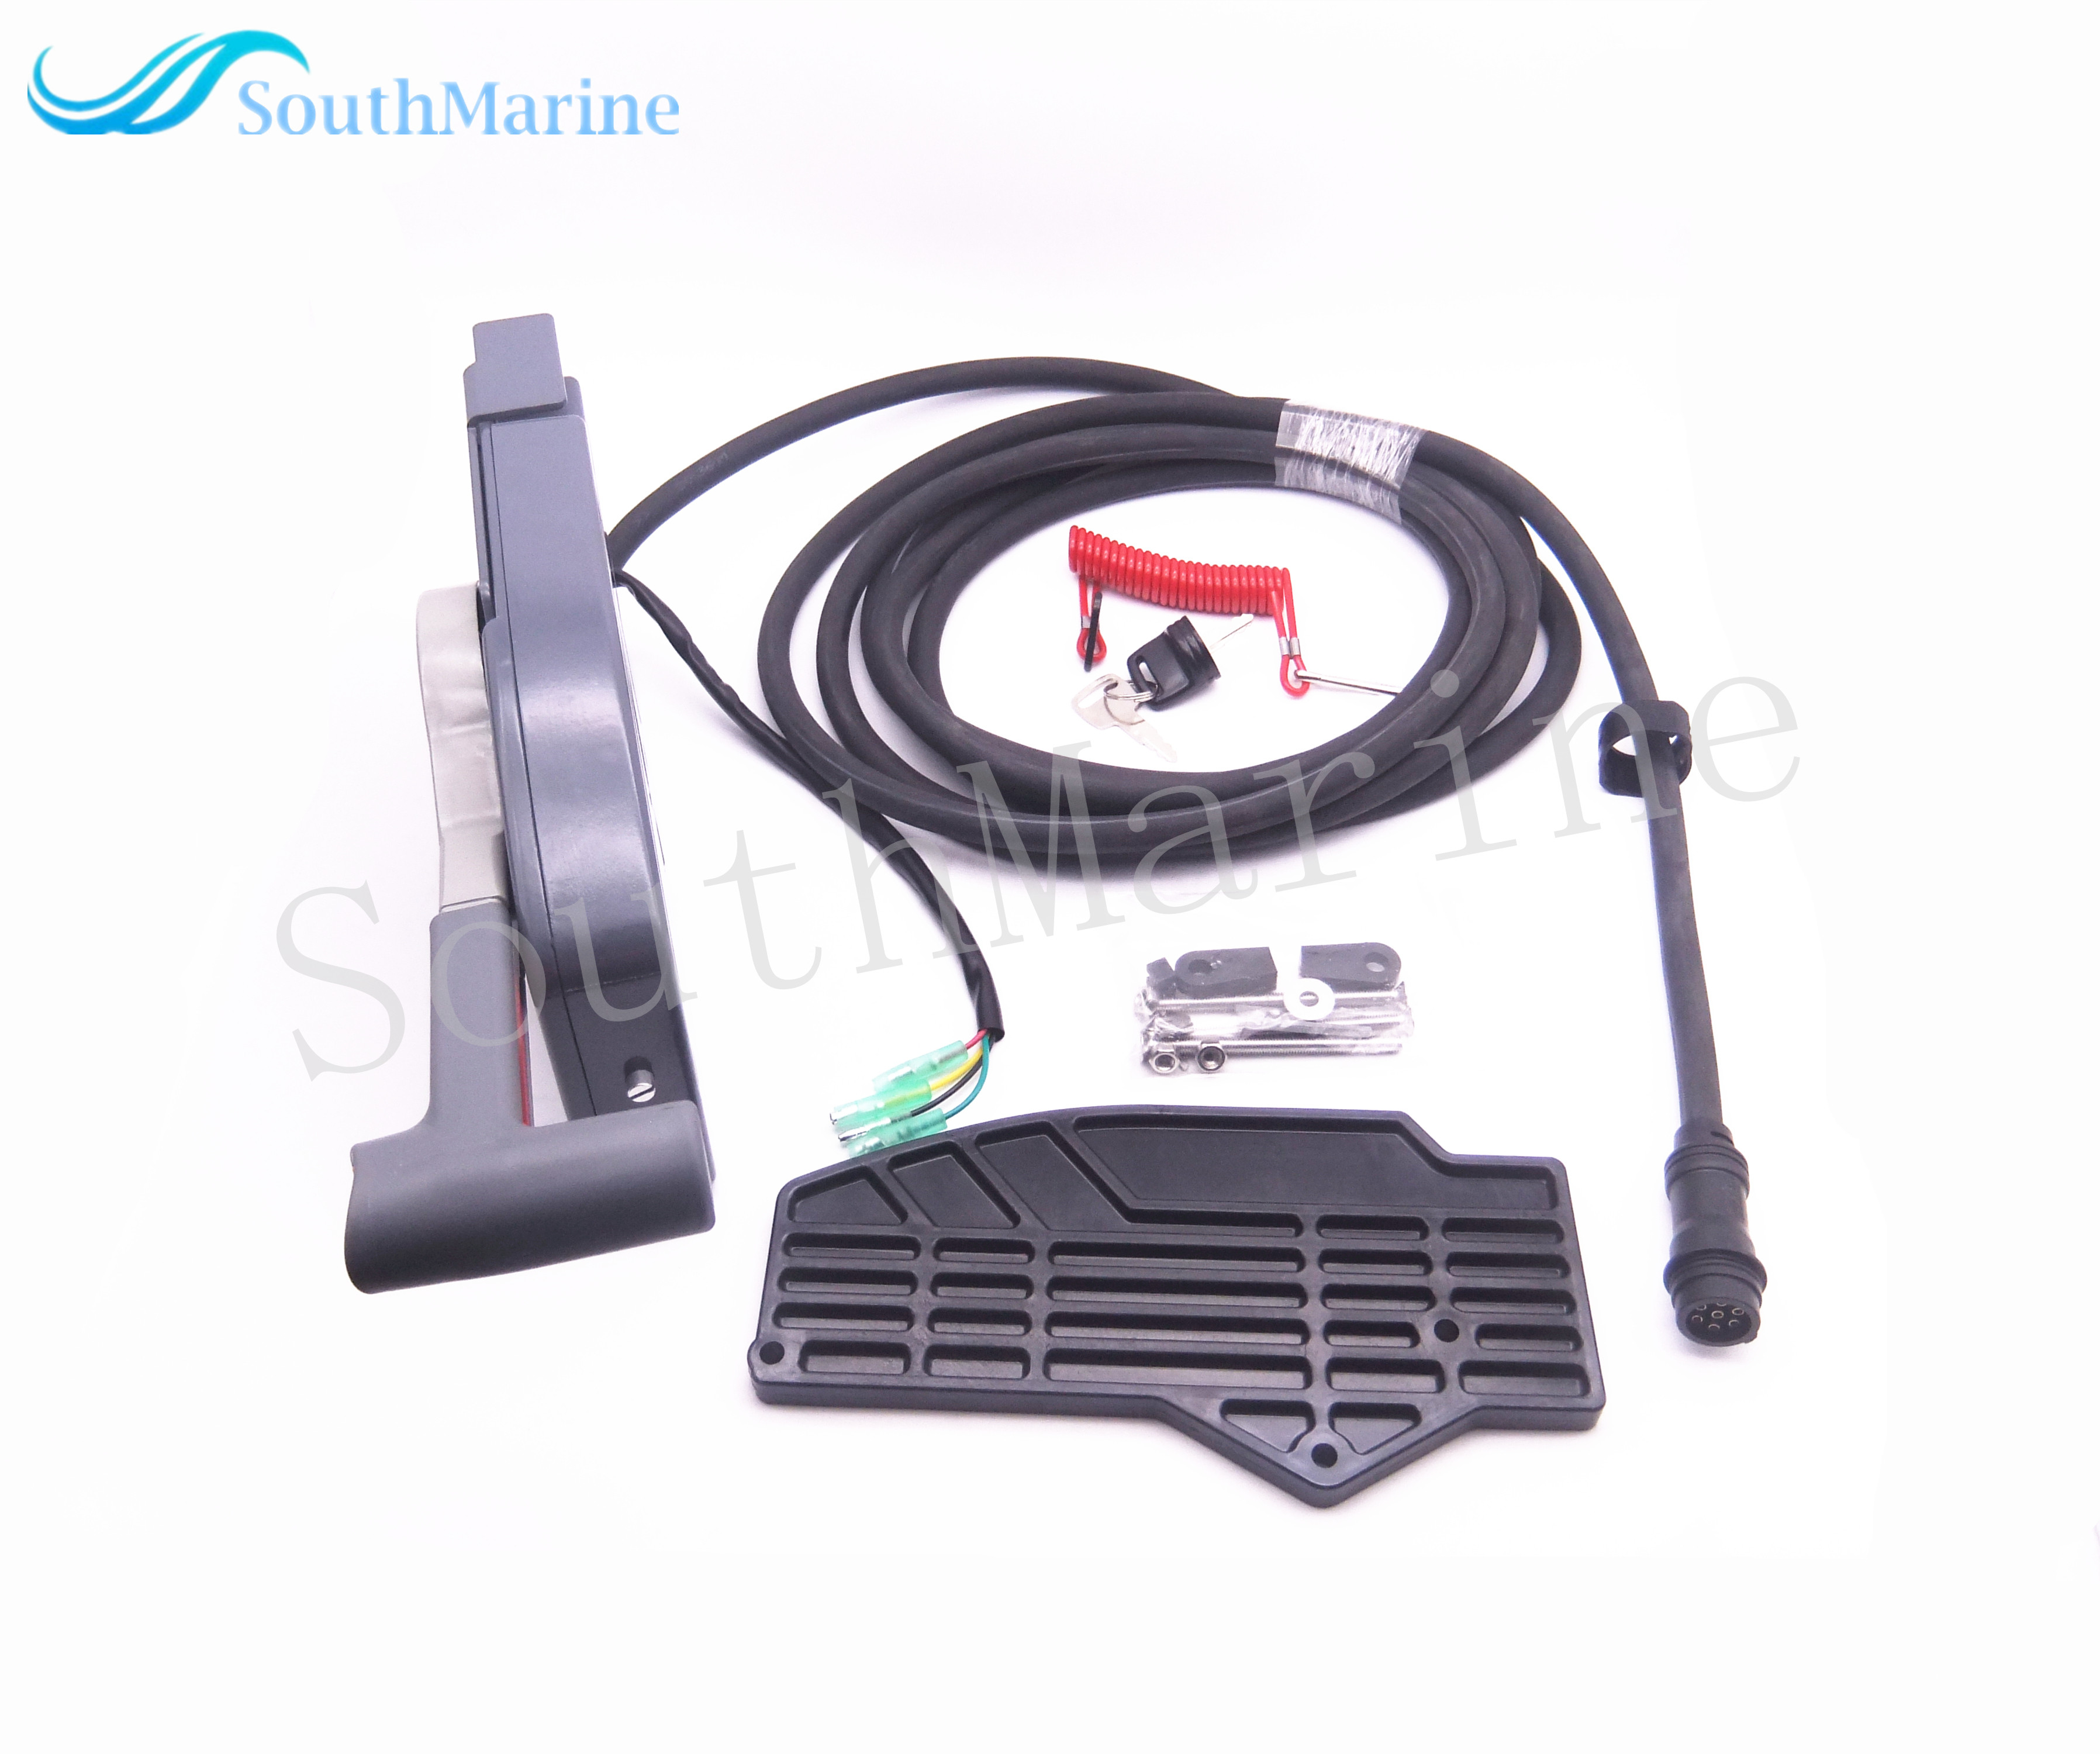 Oversee 703 48205 1a 16 Outboard Remote Control Assy 10pin Yamaha Main Harness Boat Motor 48230 14 48203 15